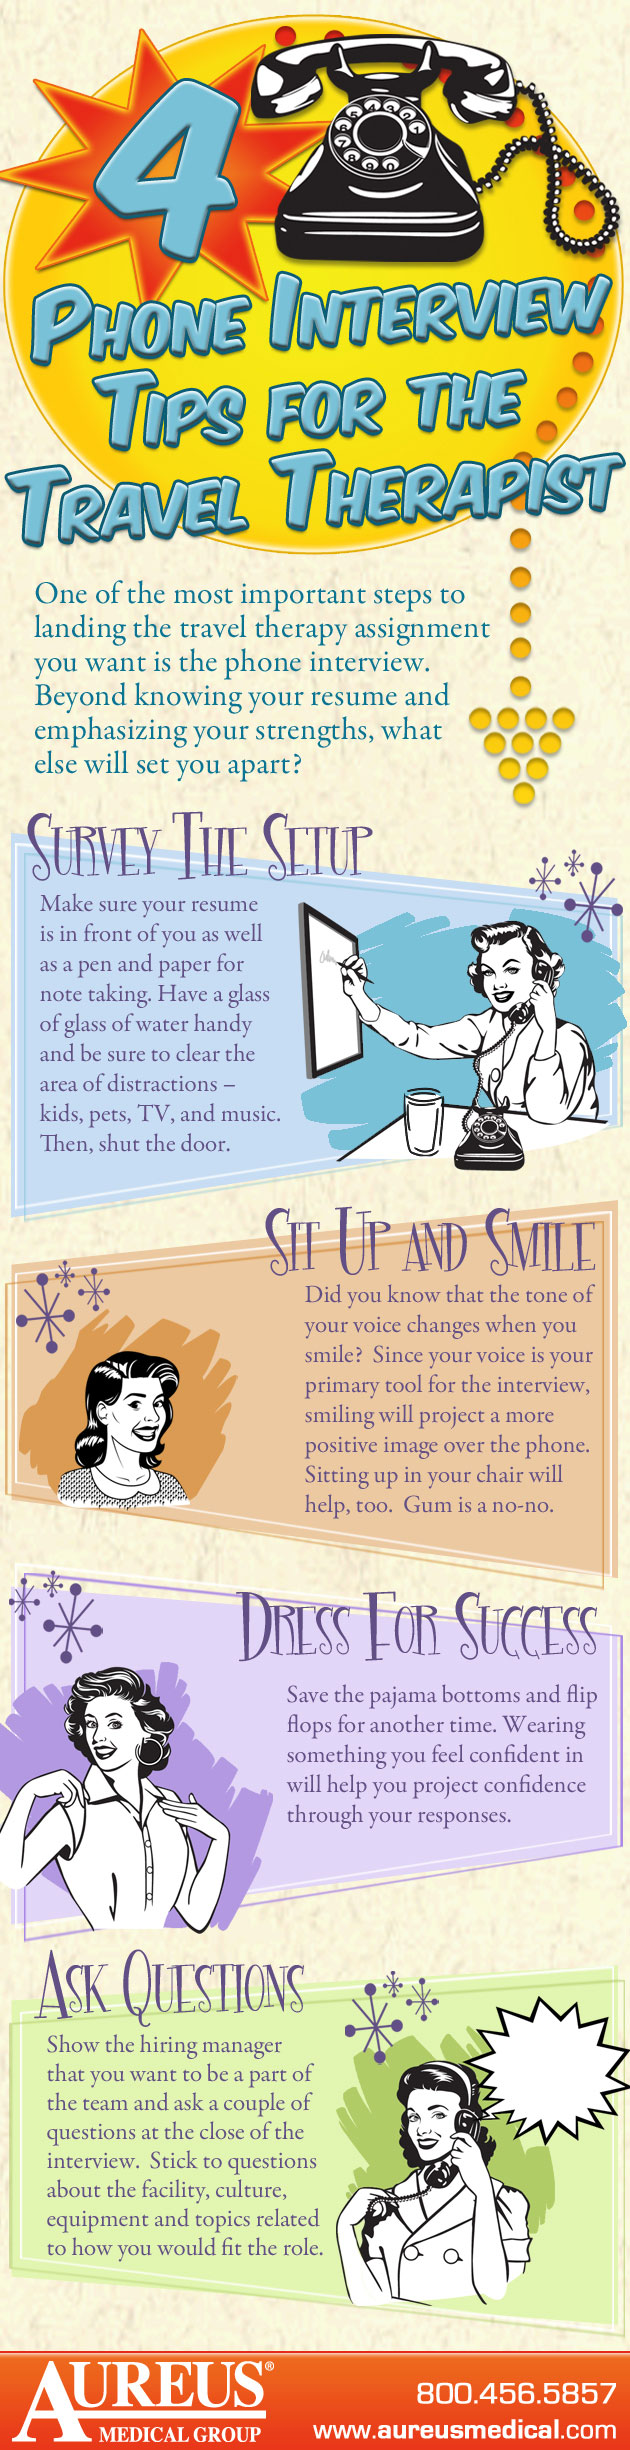 infographic > phone interview tips for travel therapy jobs aureus four phone interview tips for the travel therapist